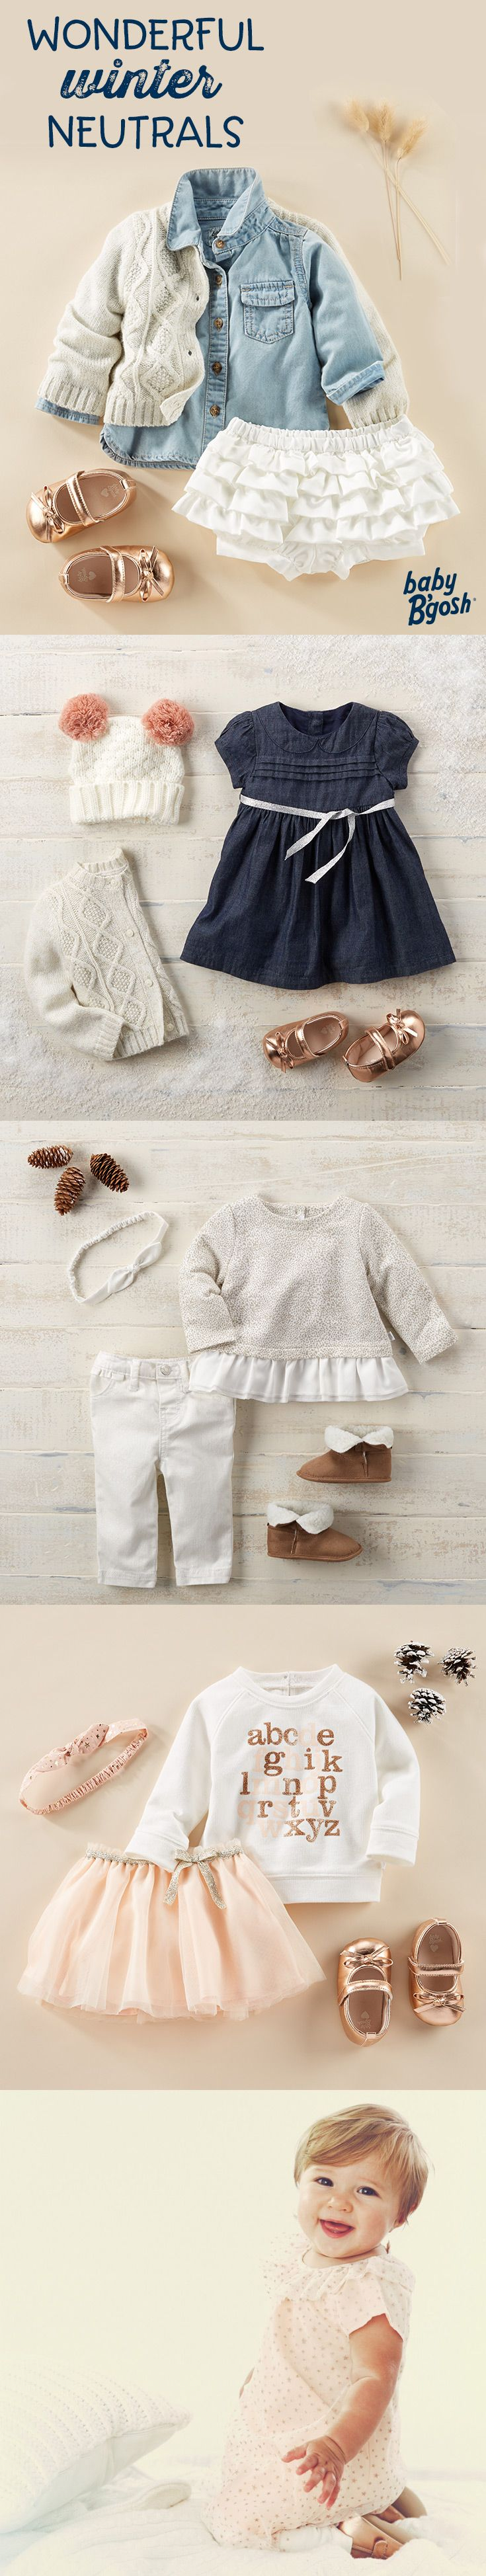 WONDERFUL WINTER NEUTRALS: A little pink and a lot of love goes into these looks from Baby B'gosh. Add a festive touch with tiny